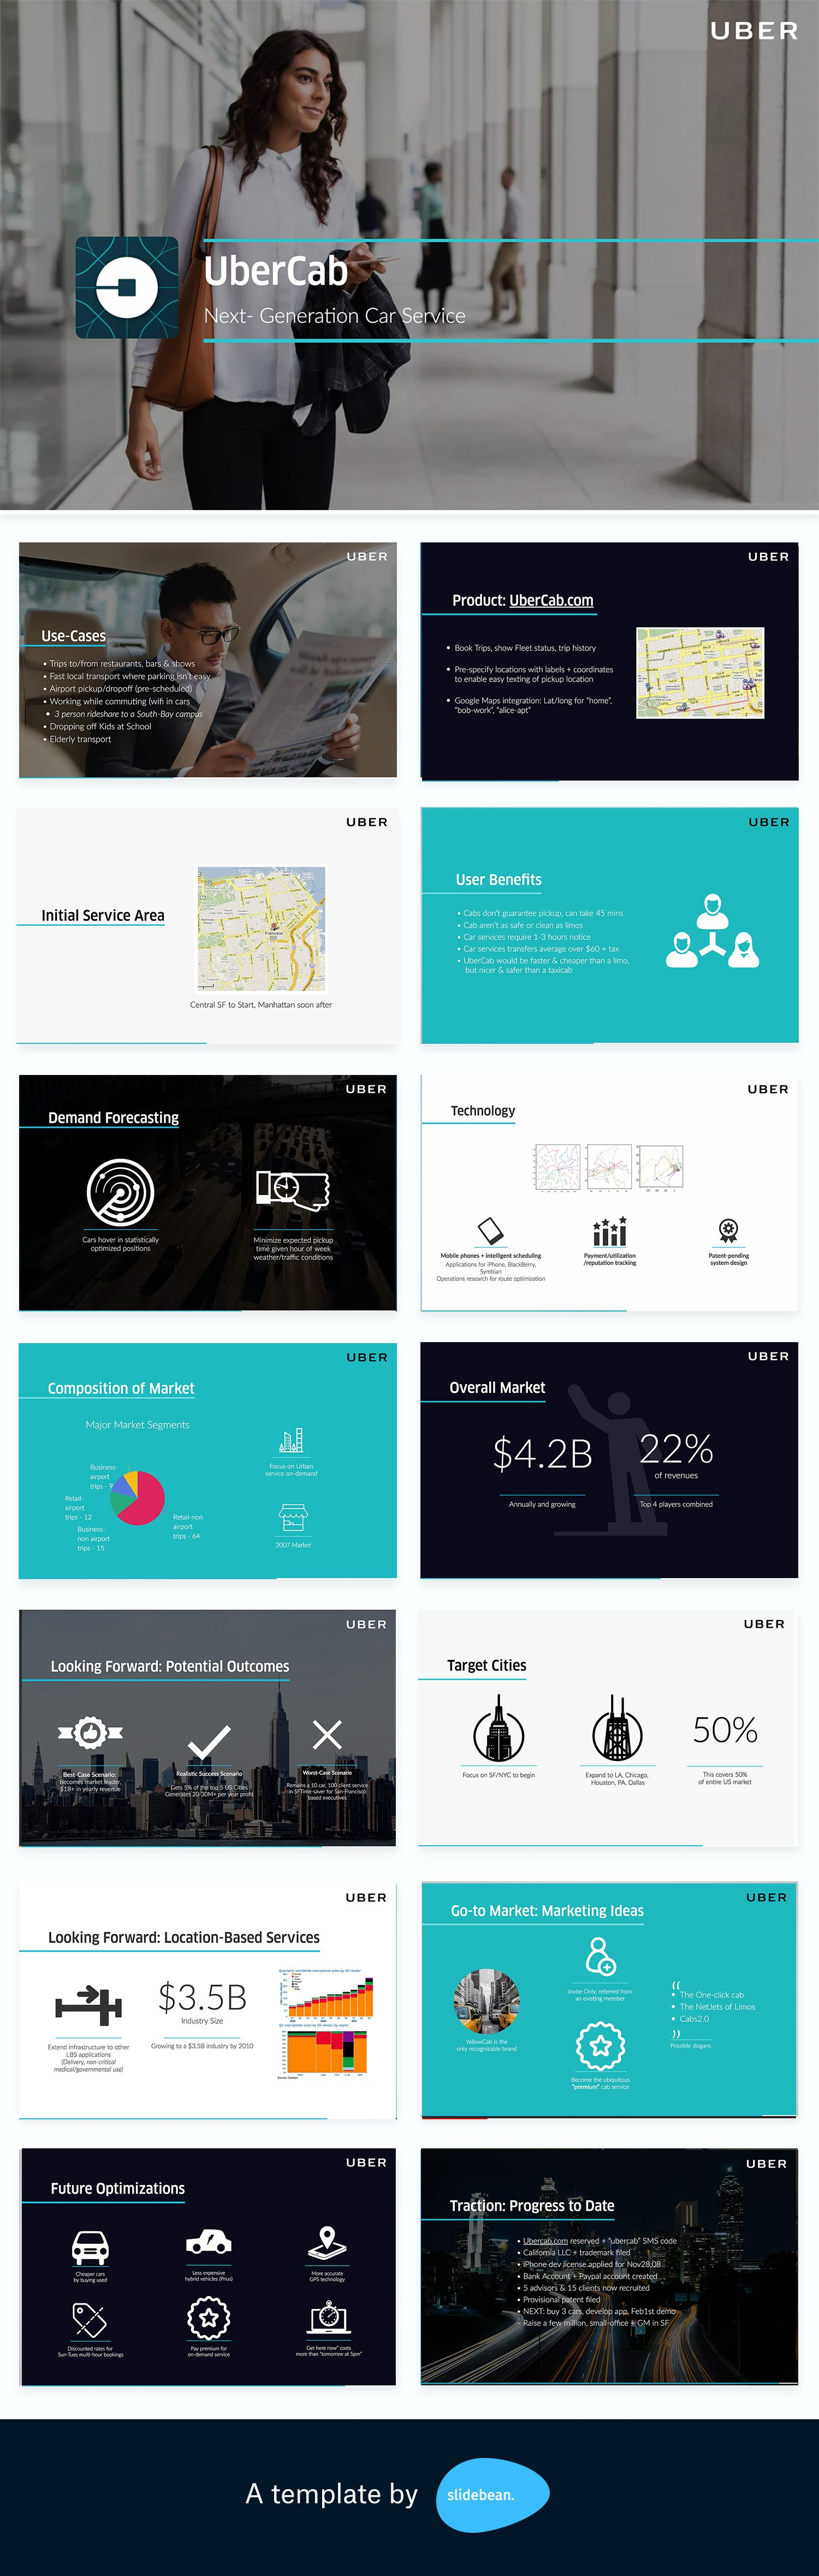 Uber Pitch Deck Template PDF and PPT Download